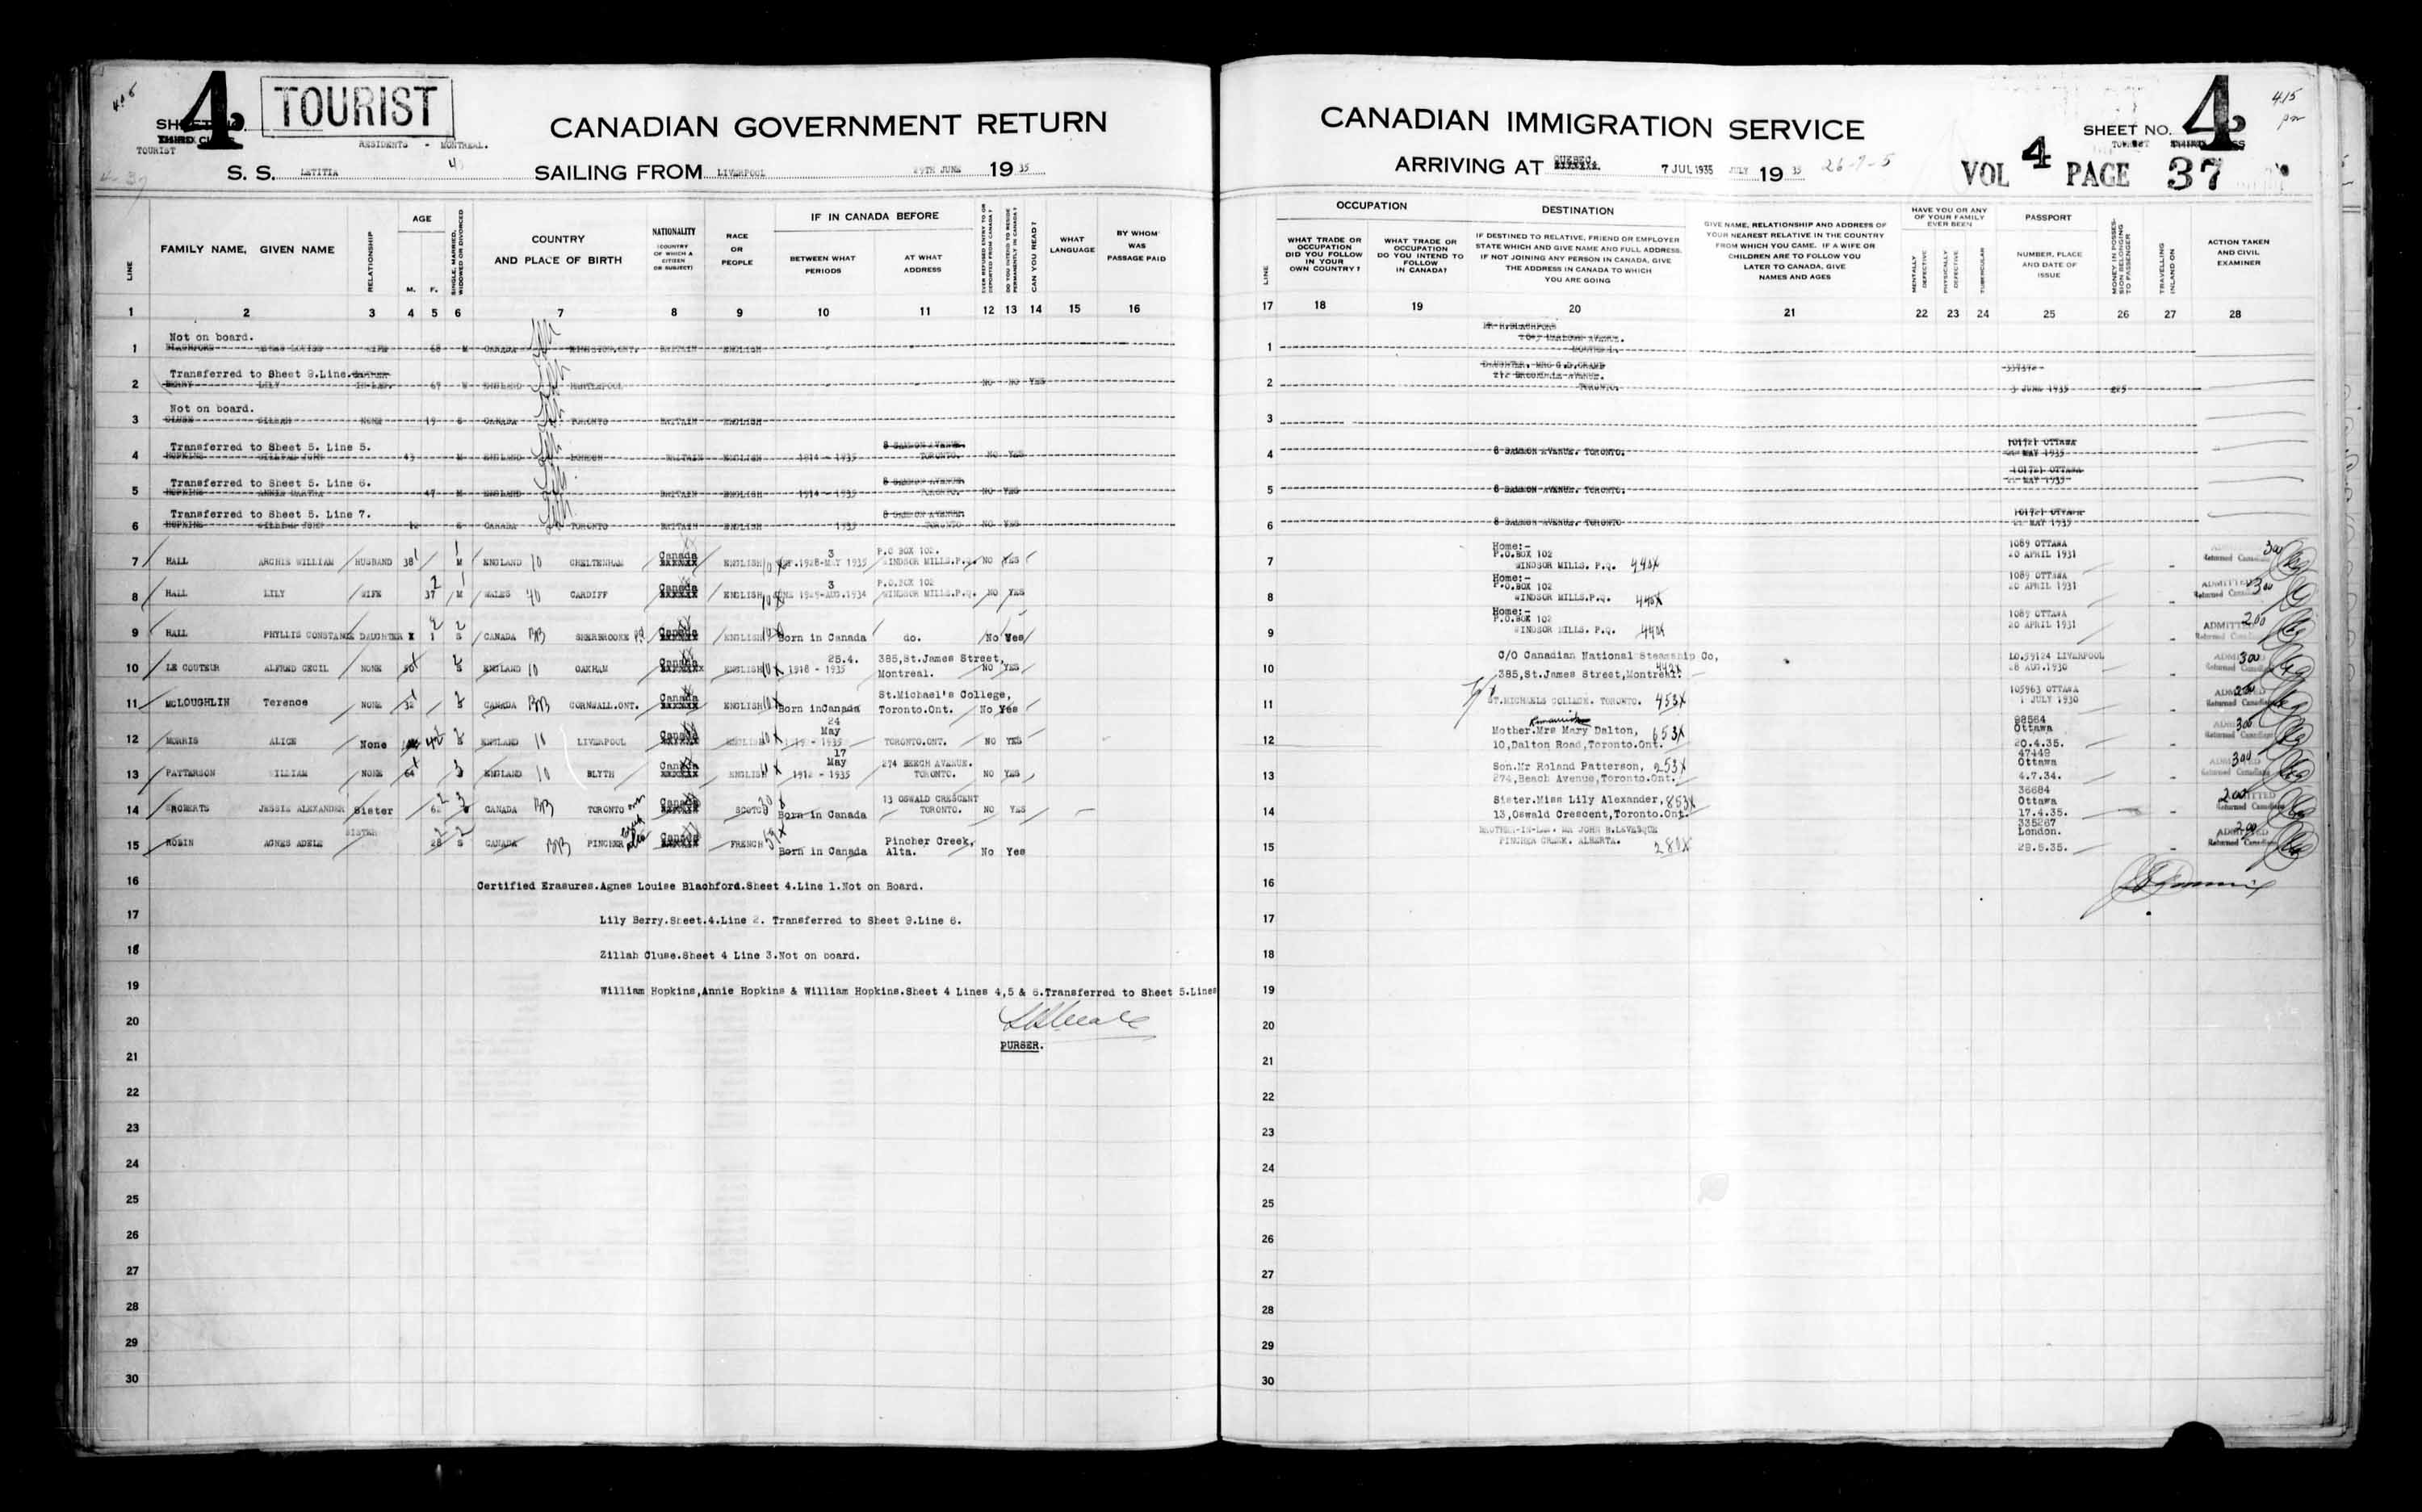 Title: Passenger Lists: Quebec City (1925-1935) - Mikan Number: 134839 - Microform: t-14791